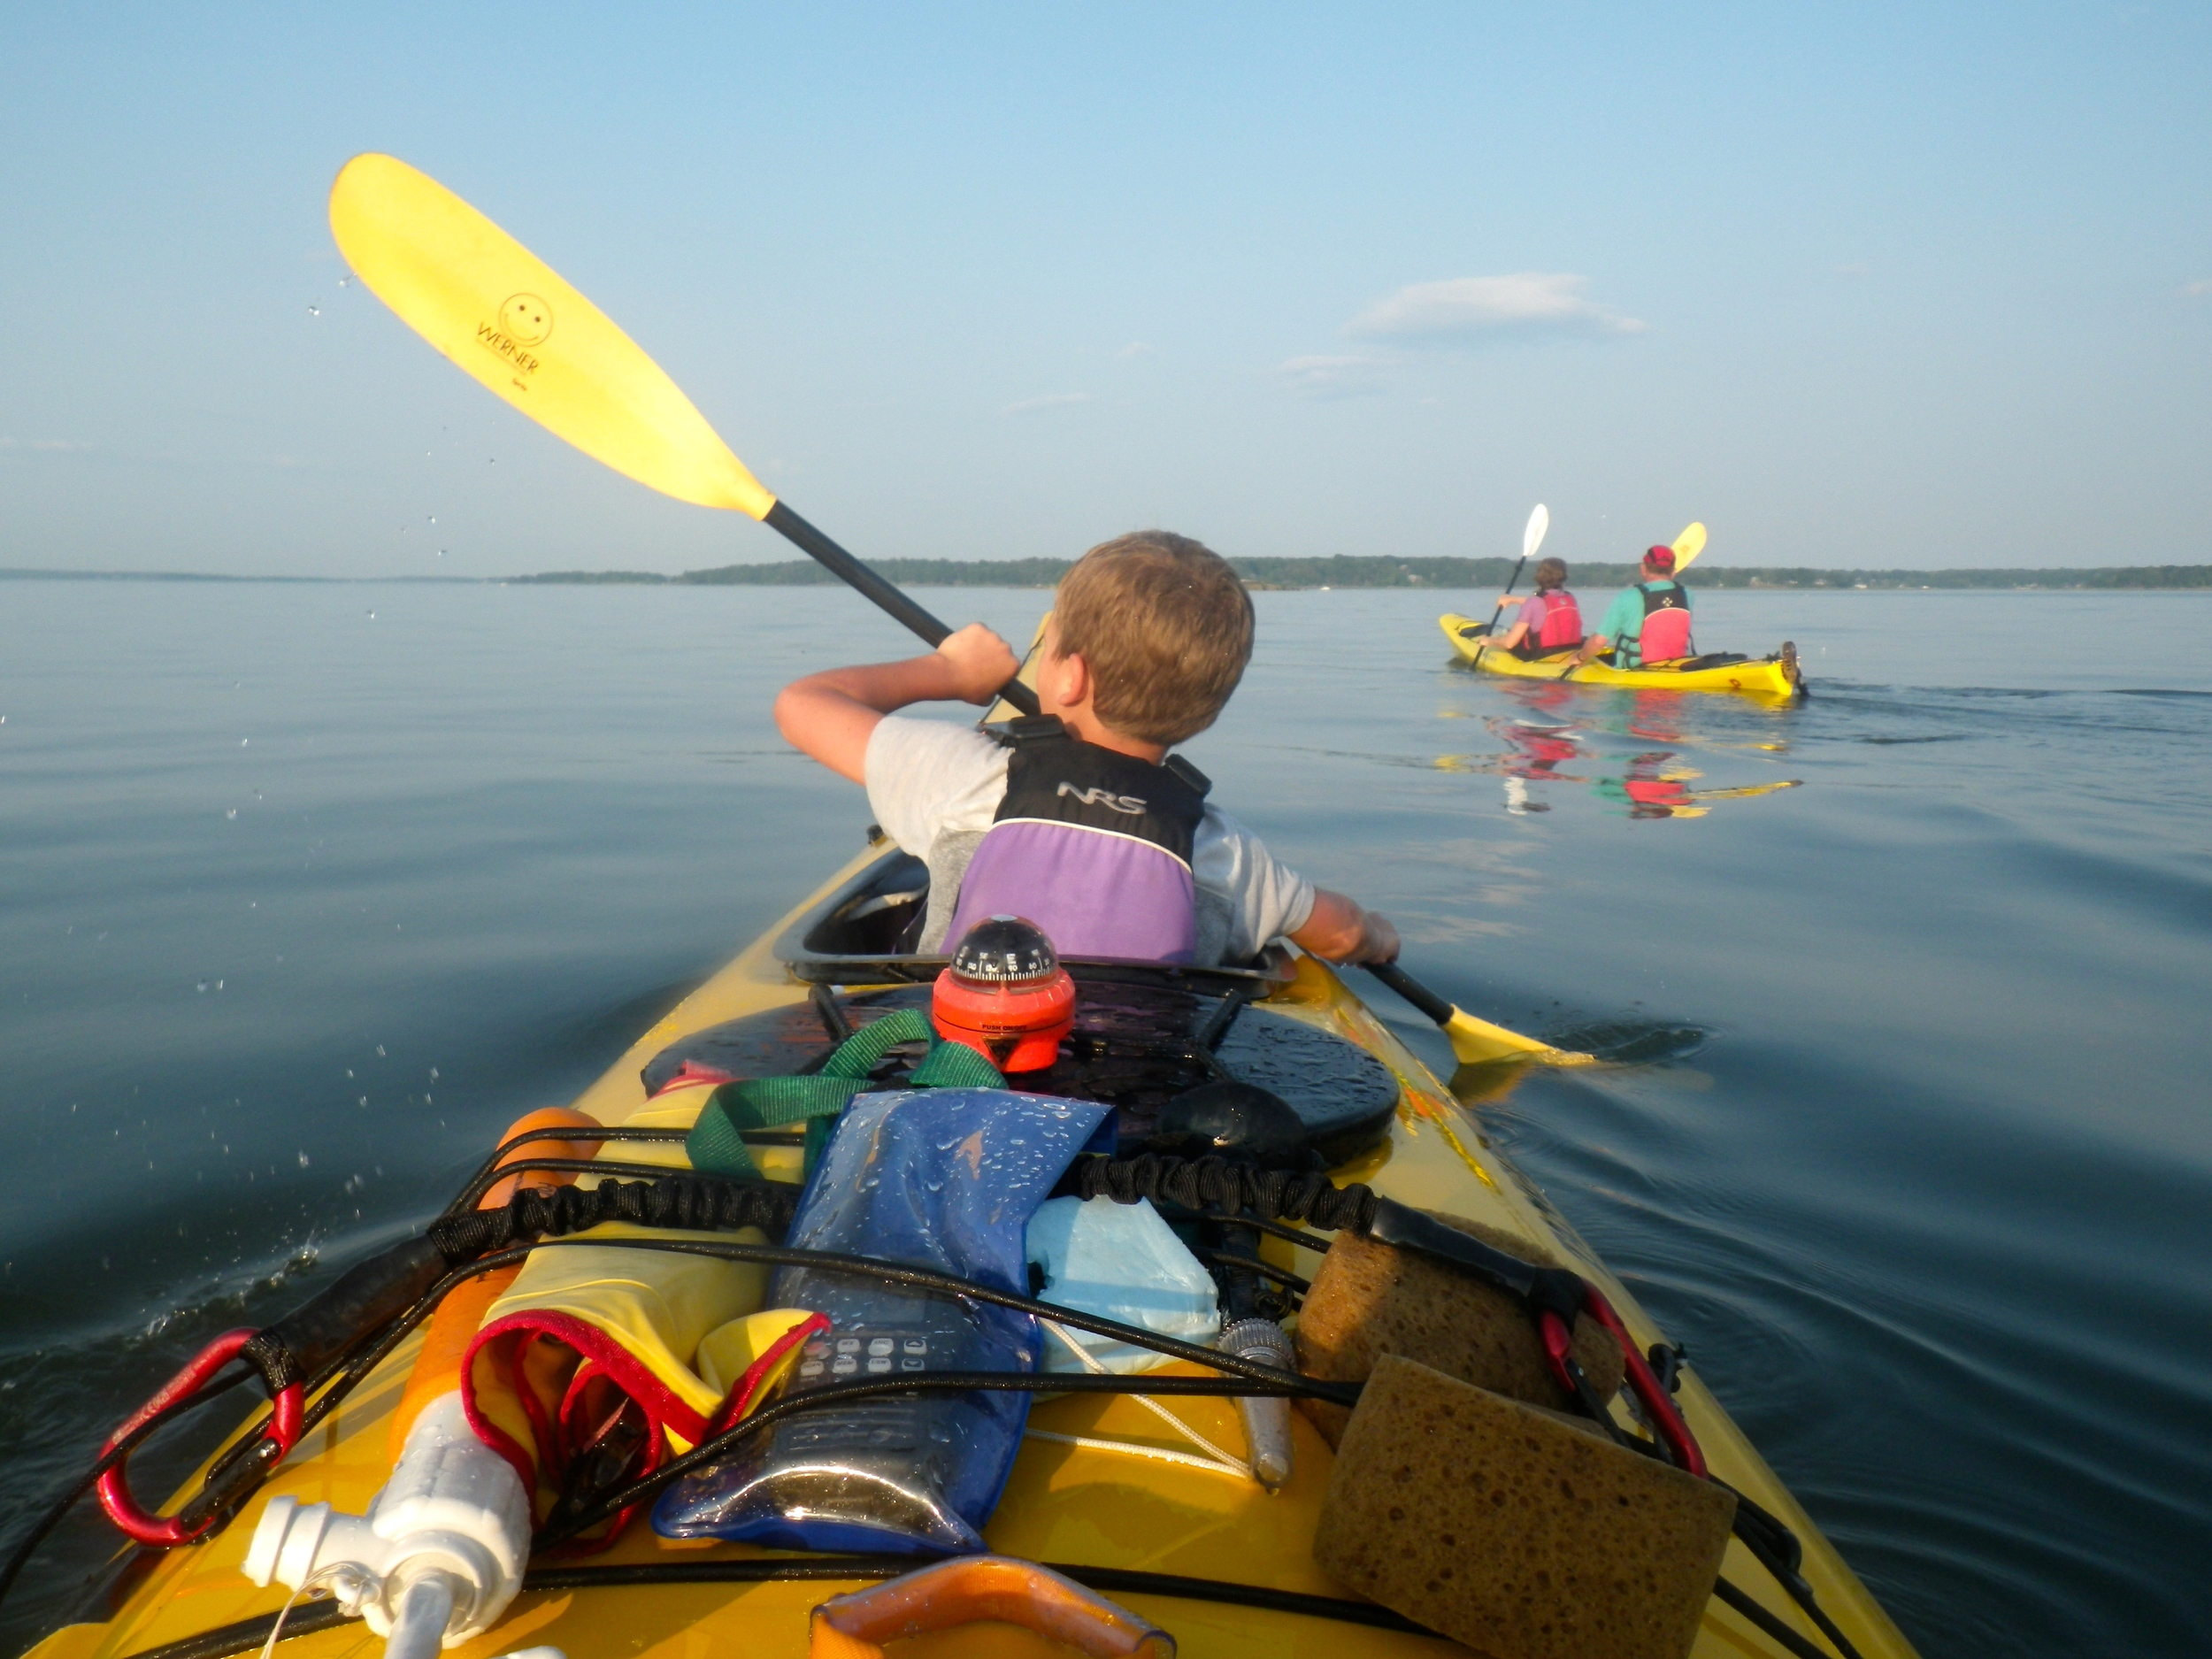 Family Sea kayak Tour - Fridays, 10:00 to 12:00 or by request$40 per adult, $35 per child age 7 - 16.